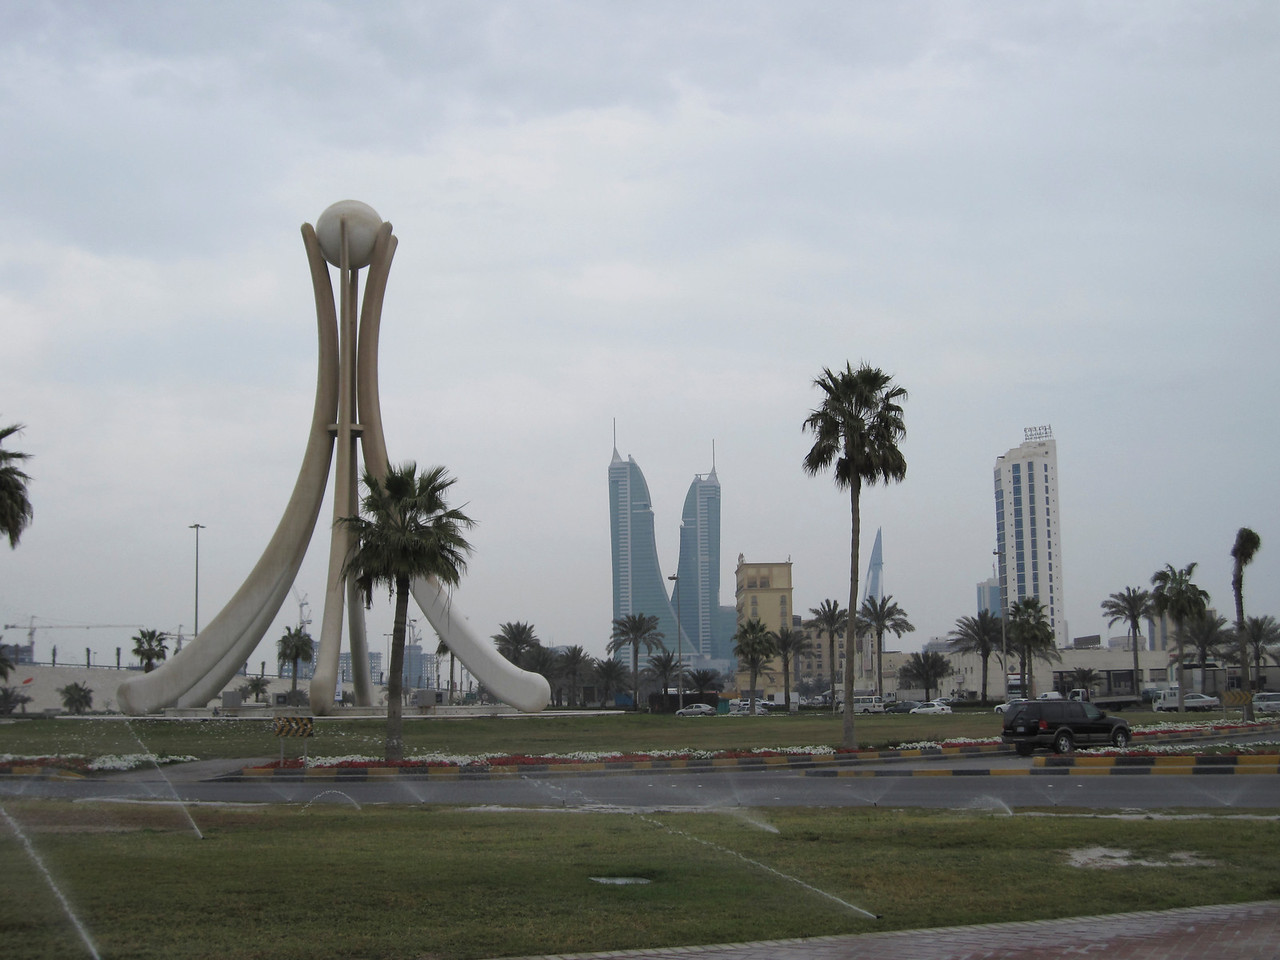 Pearl Roundabout in Manama, Bahrain